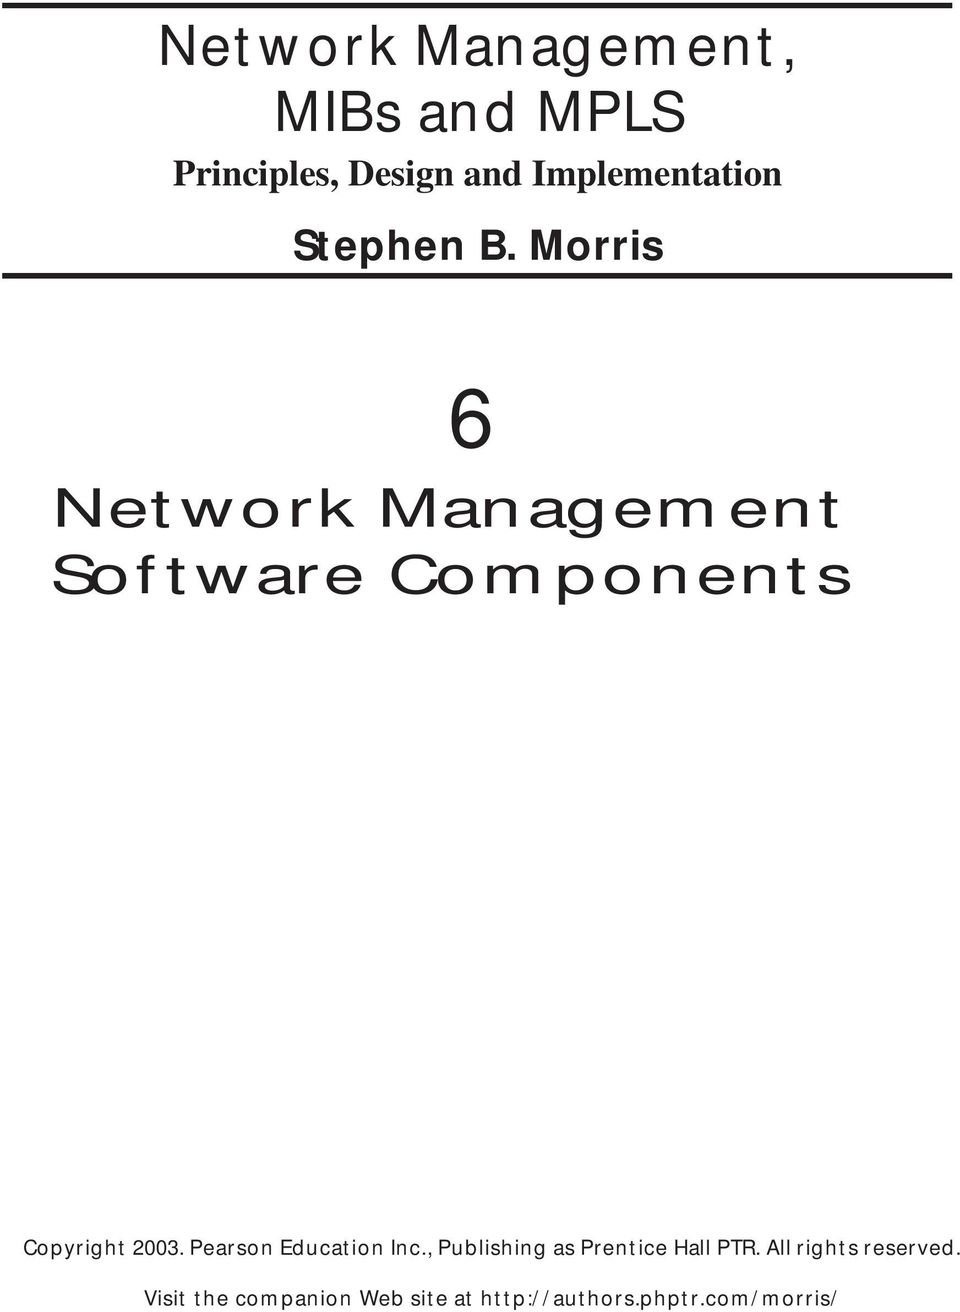 MPLS Network Management MIBs and Techniques Tools